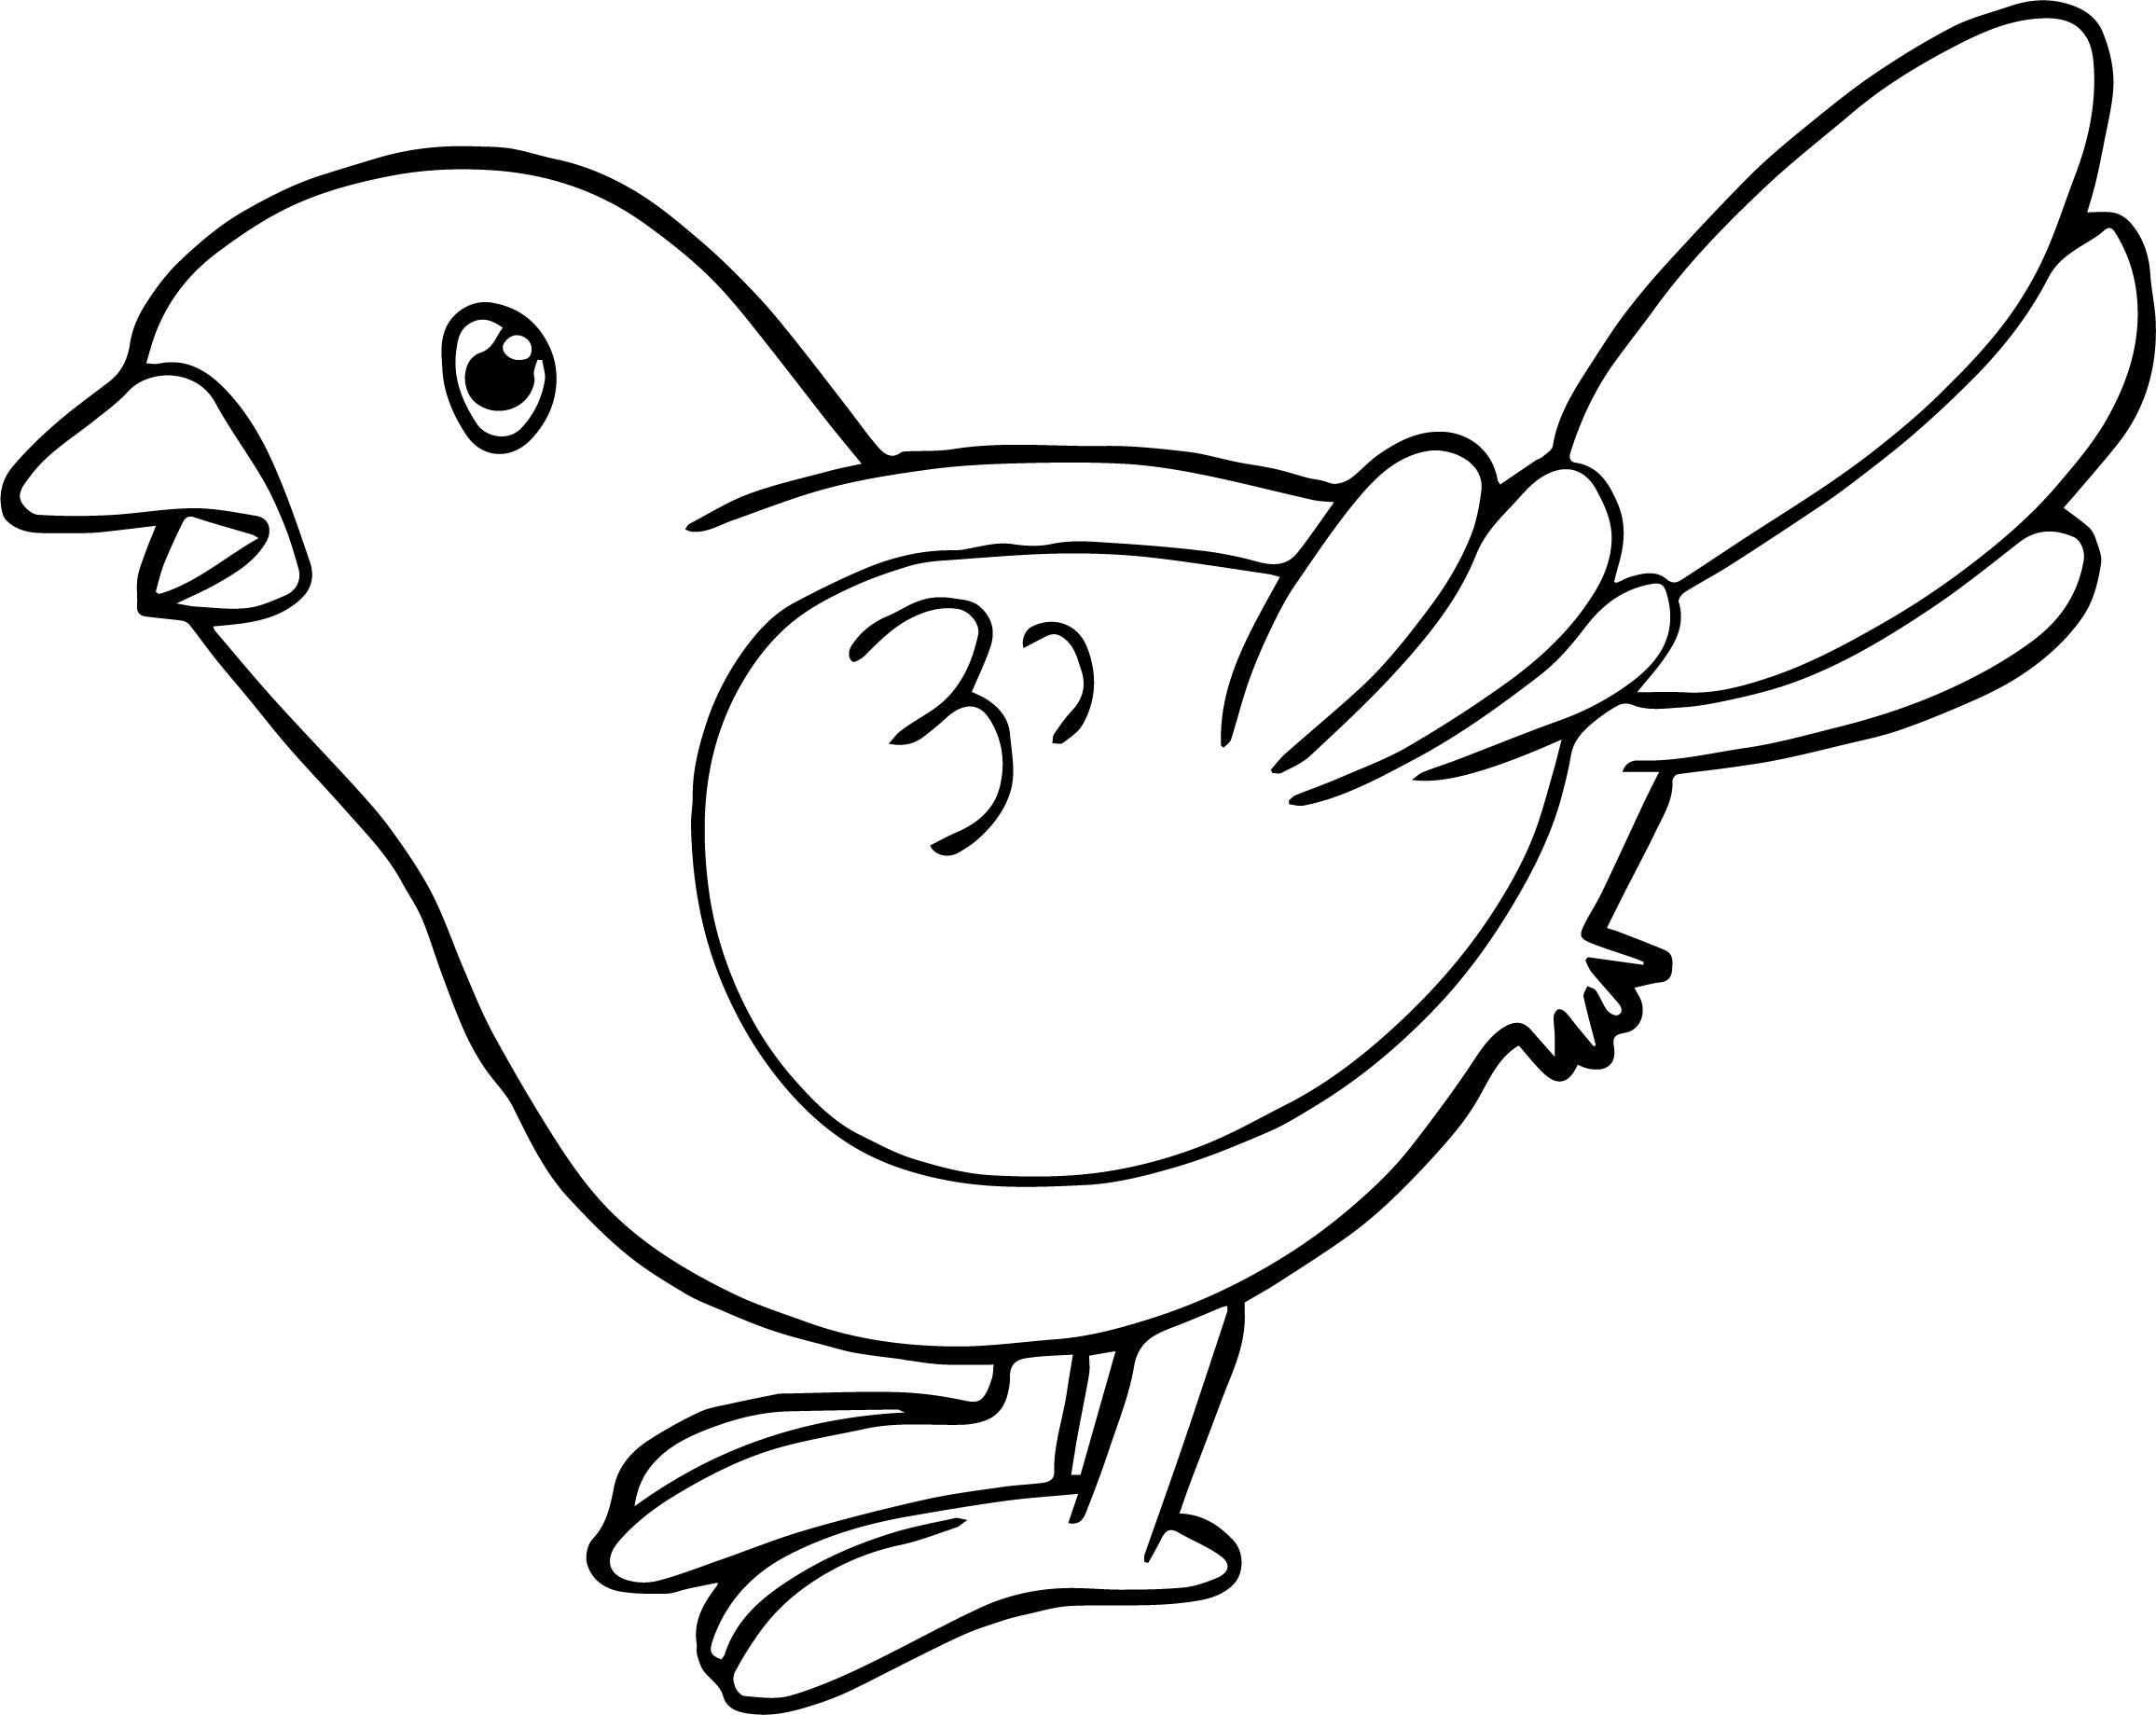 Bird Coloring Page Waiting Bird Coloring Page  Wecoloringpage